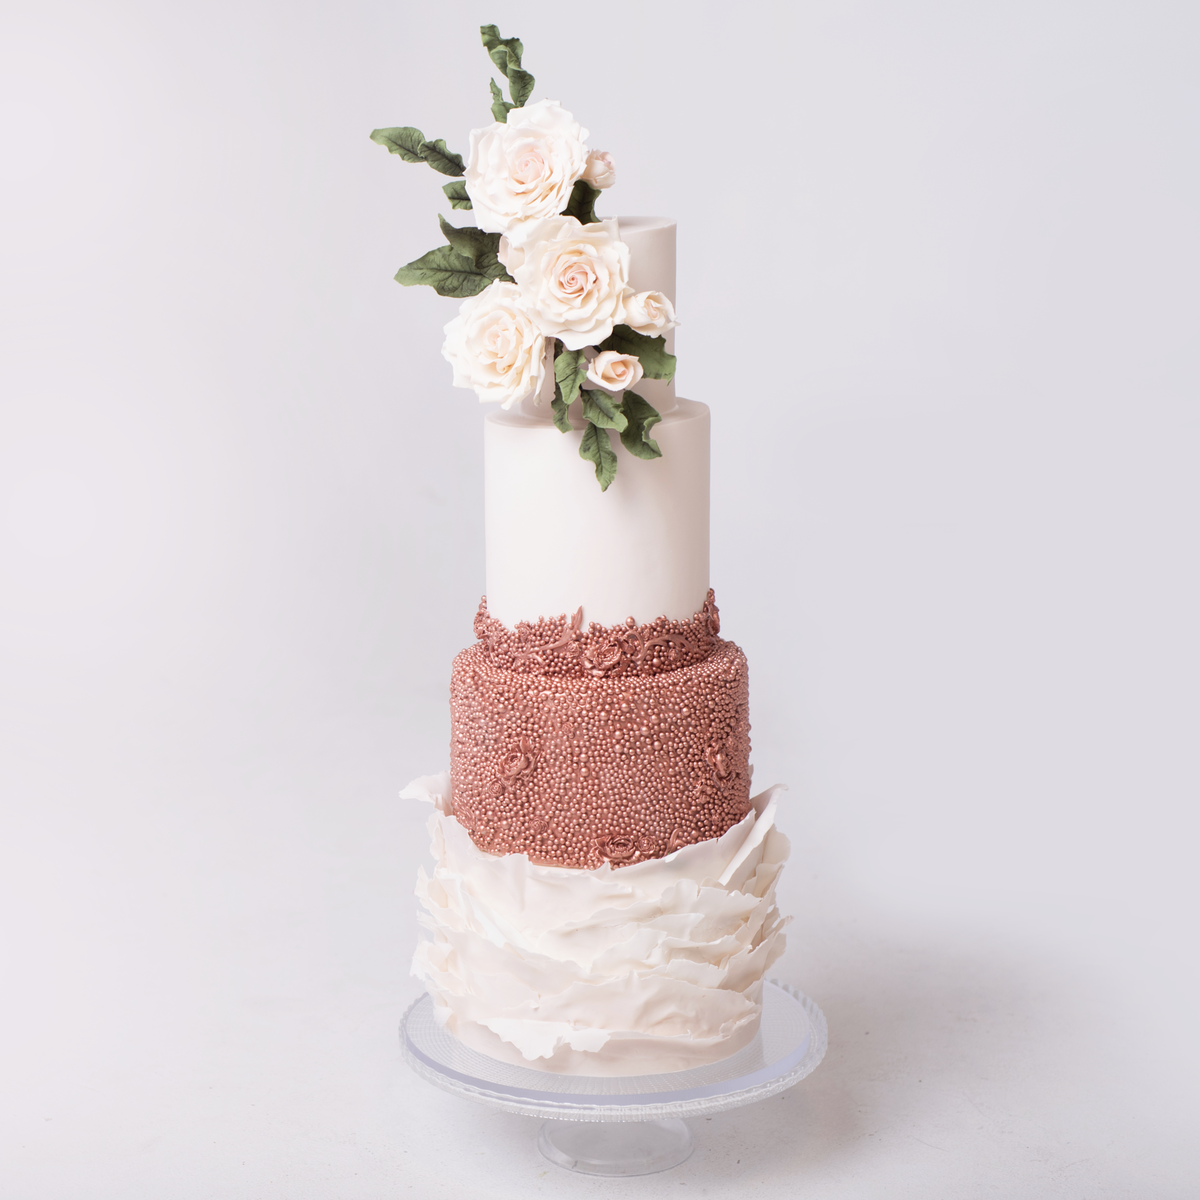 Whippt Desserts - styled wedding cake2